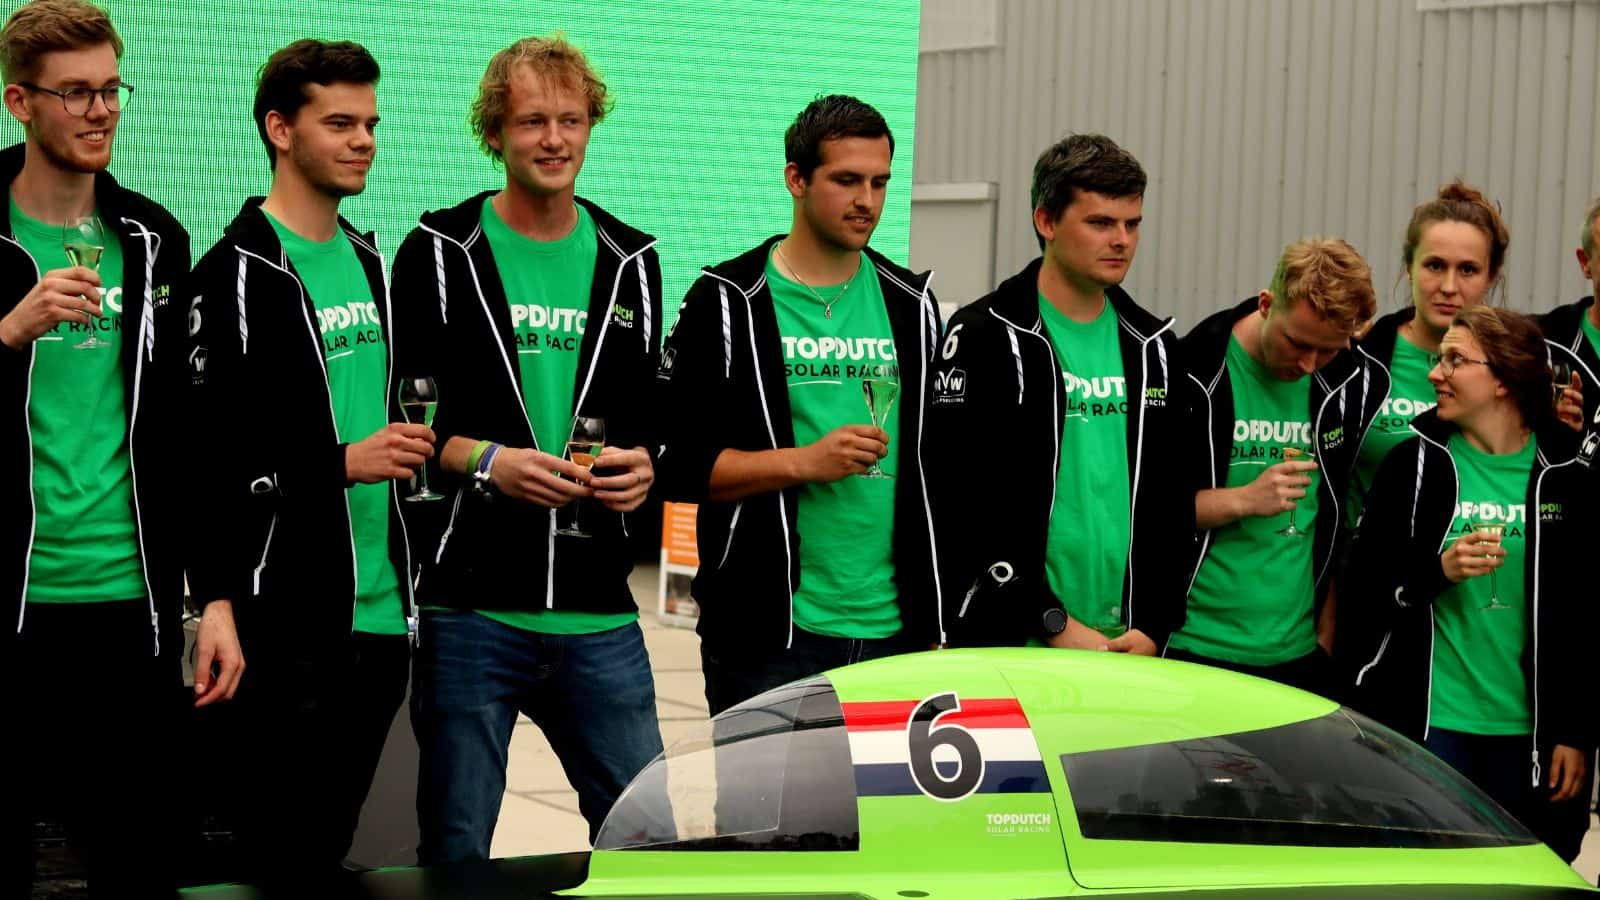 Top Dutch Solar Racing